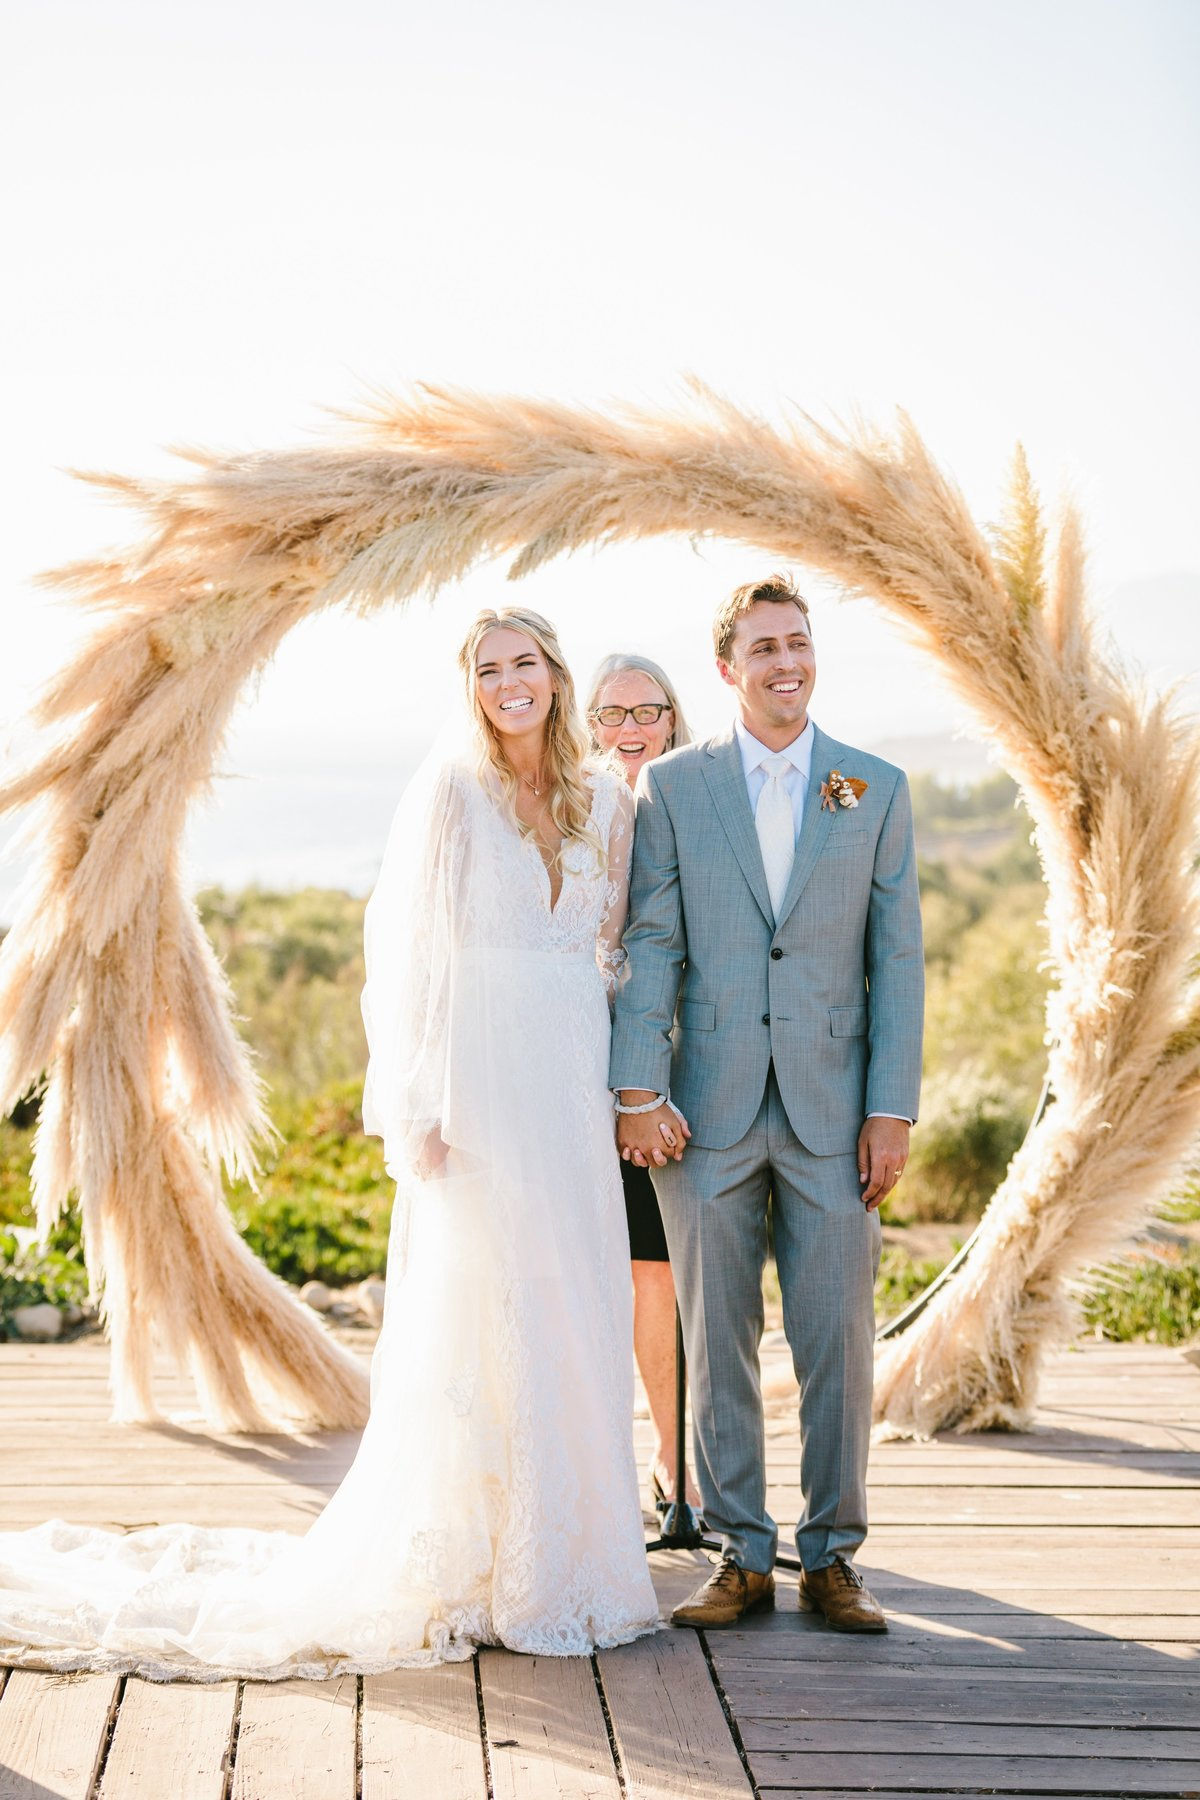 Best California Wedding Photographer-Jodee Debes Photography-69